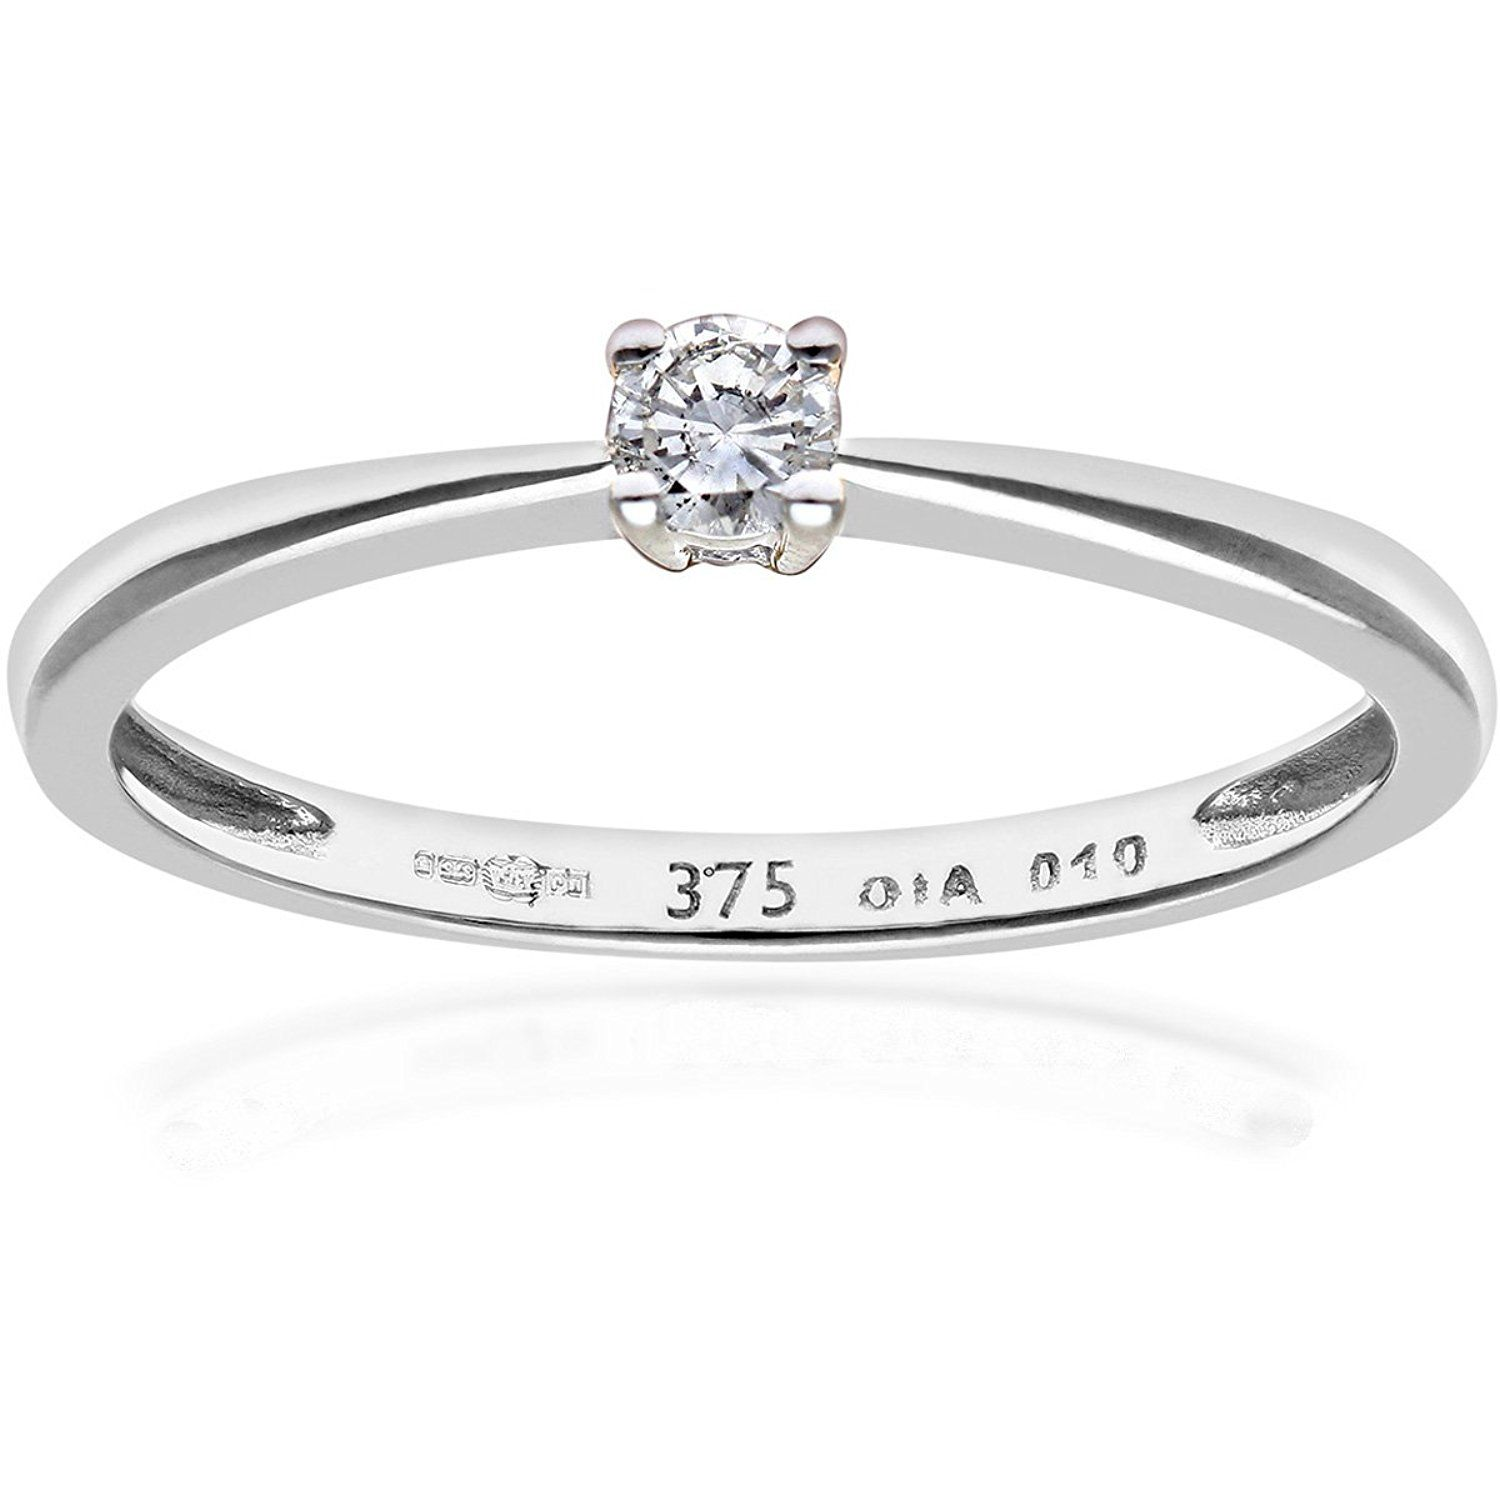 Naava 9 ct Gold Round Brilliant IJ/I Certified Diamond Solitaire Engagement Ring kKcwVGanW